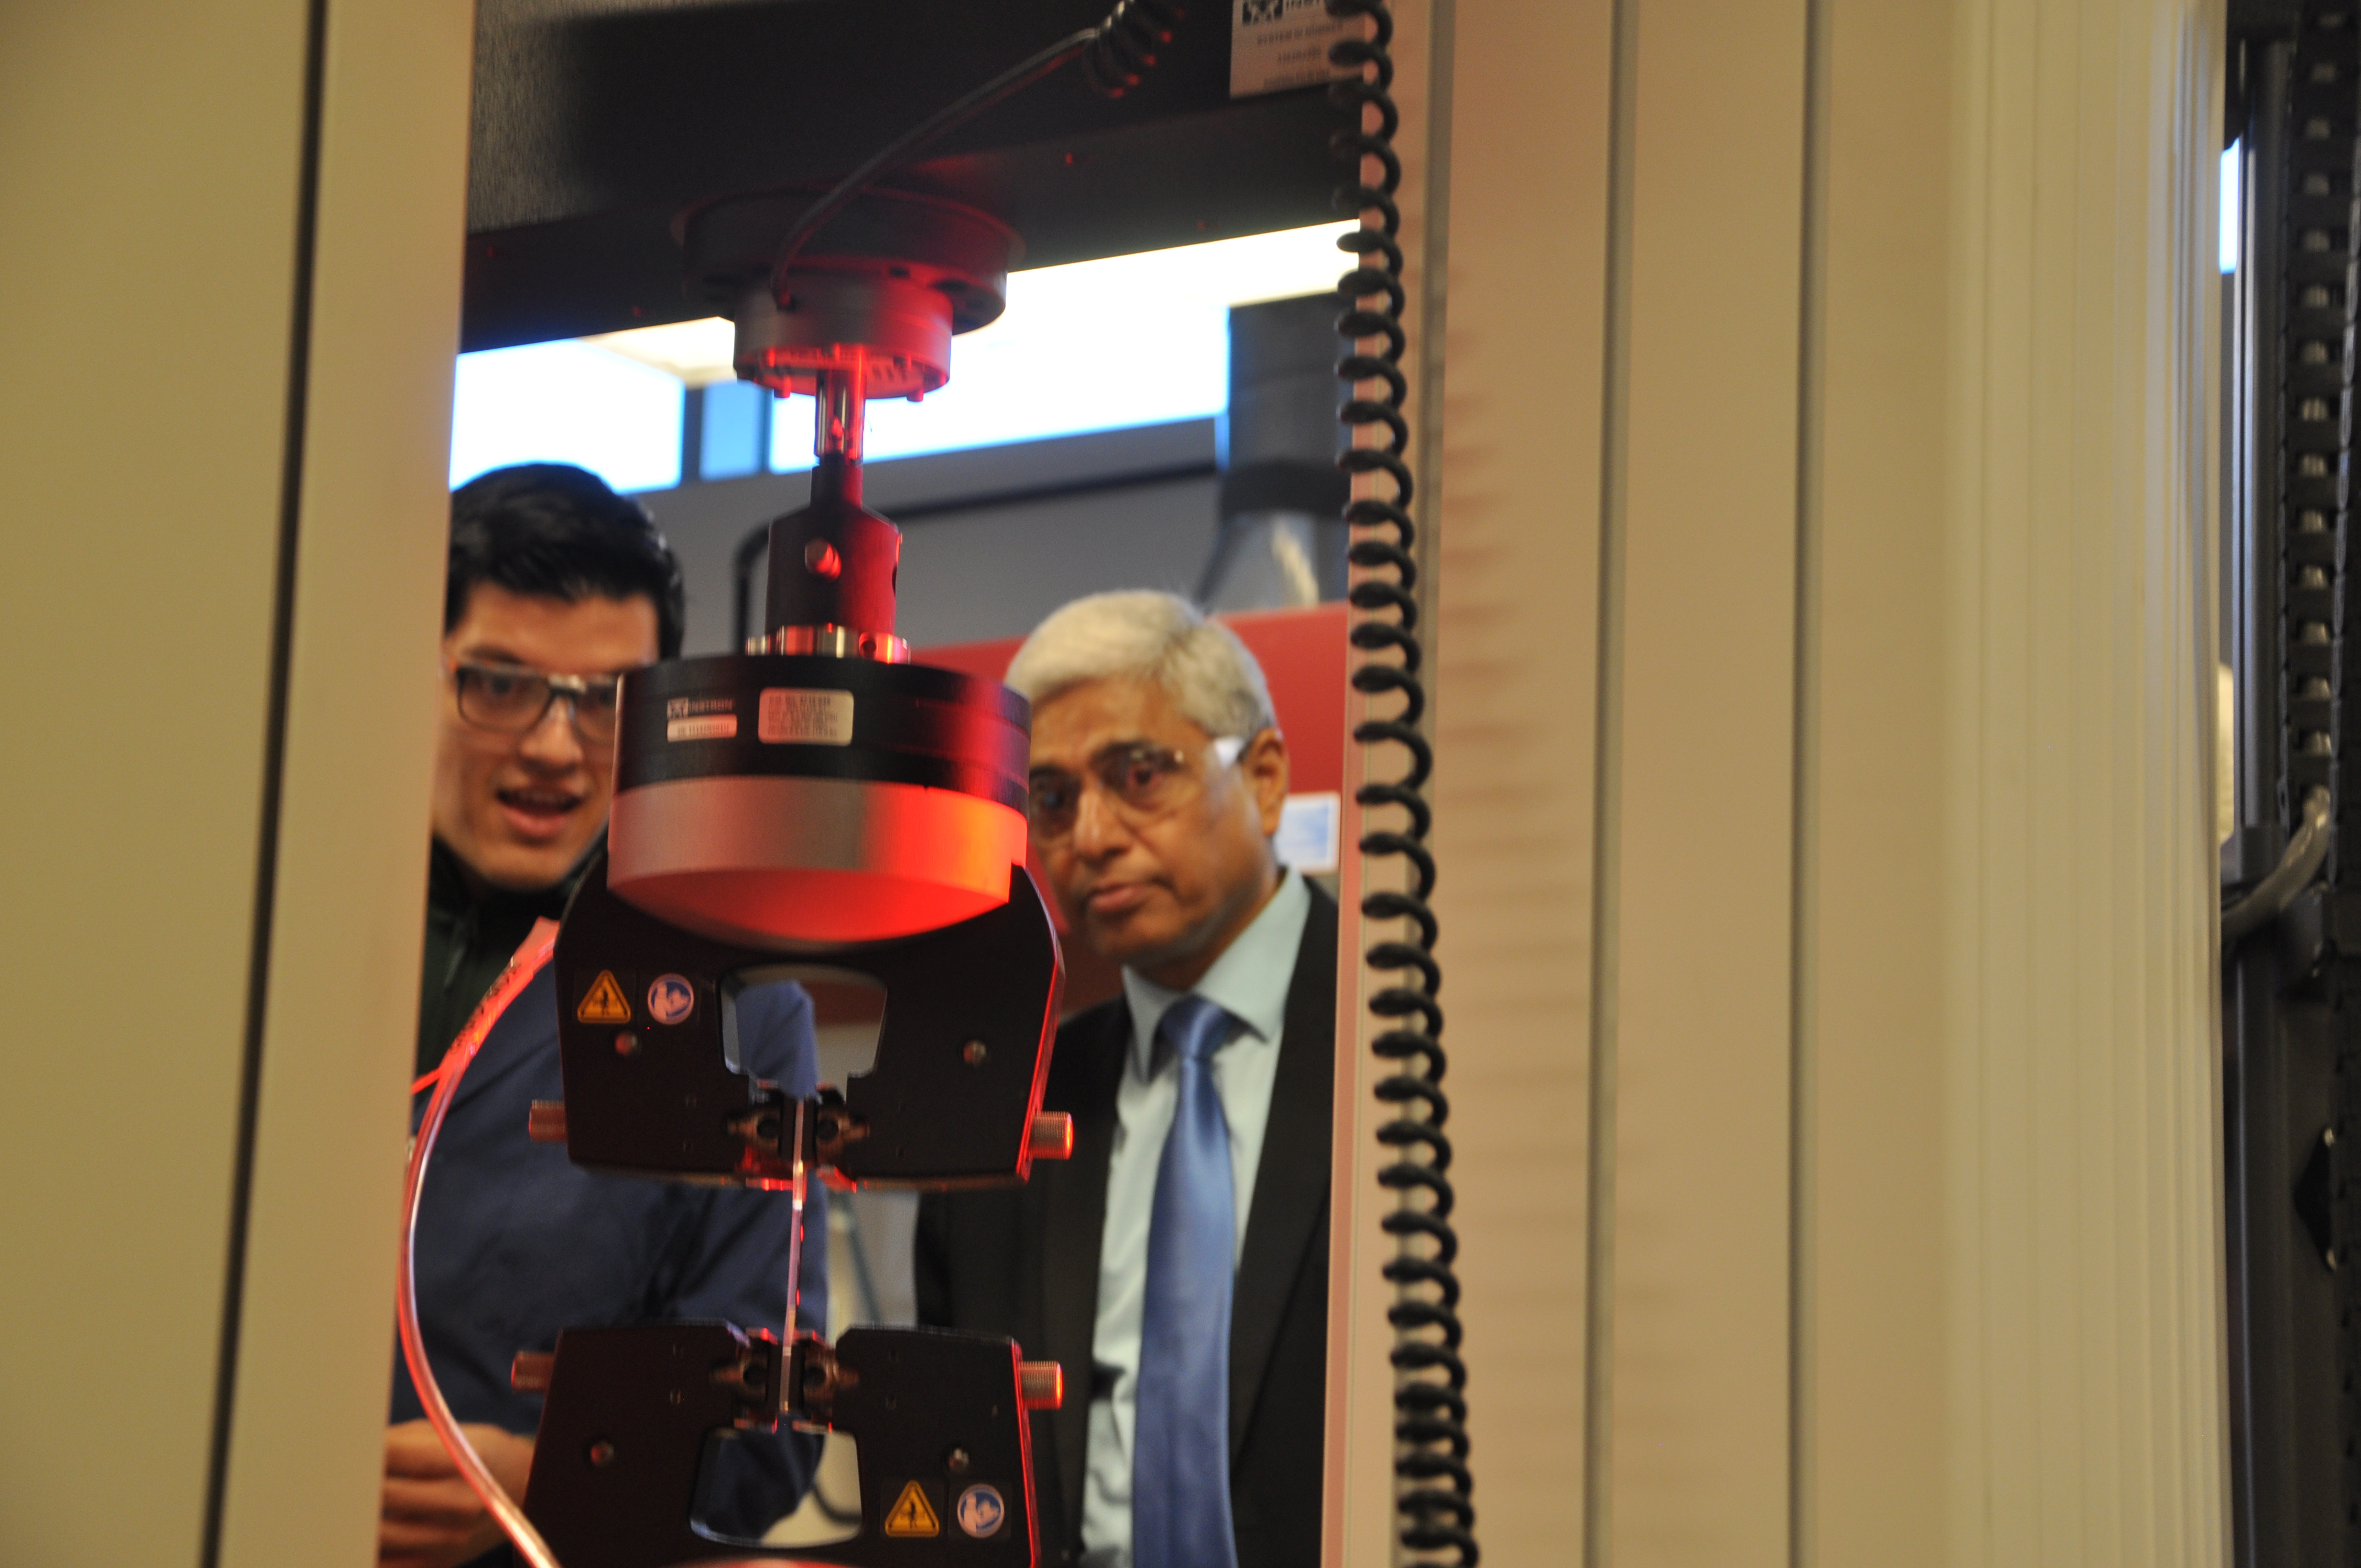 High Commissioner of India having equipment demonstrated to him.